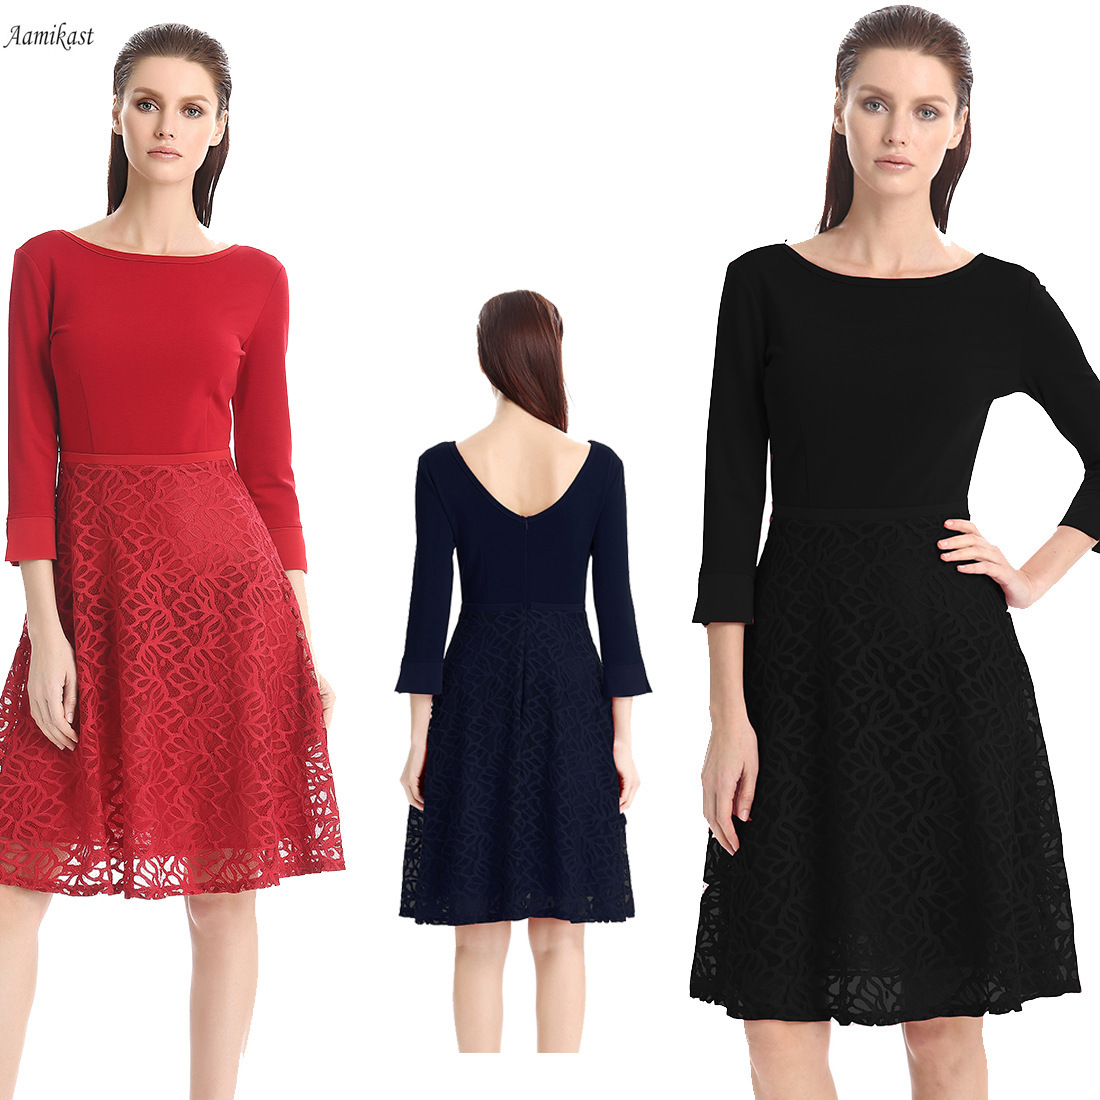 Russian clothes online